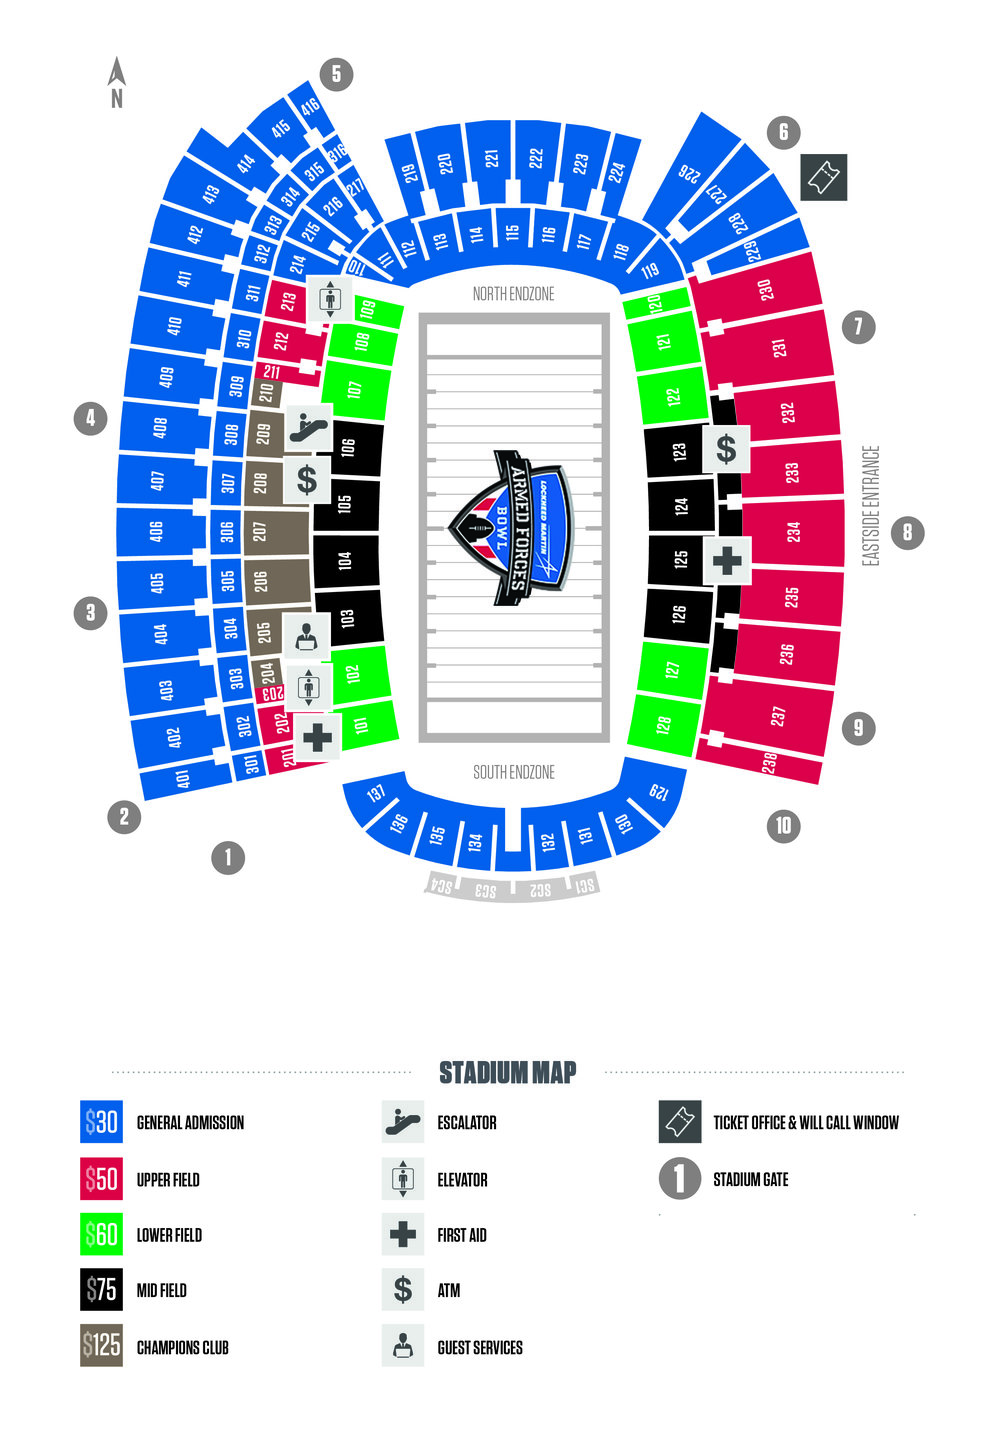 Stadium_Seating_2018.jpg